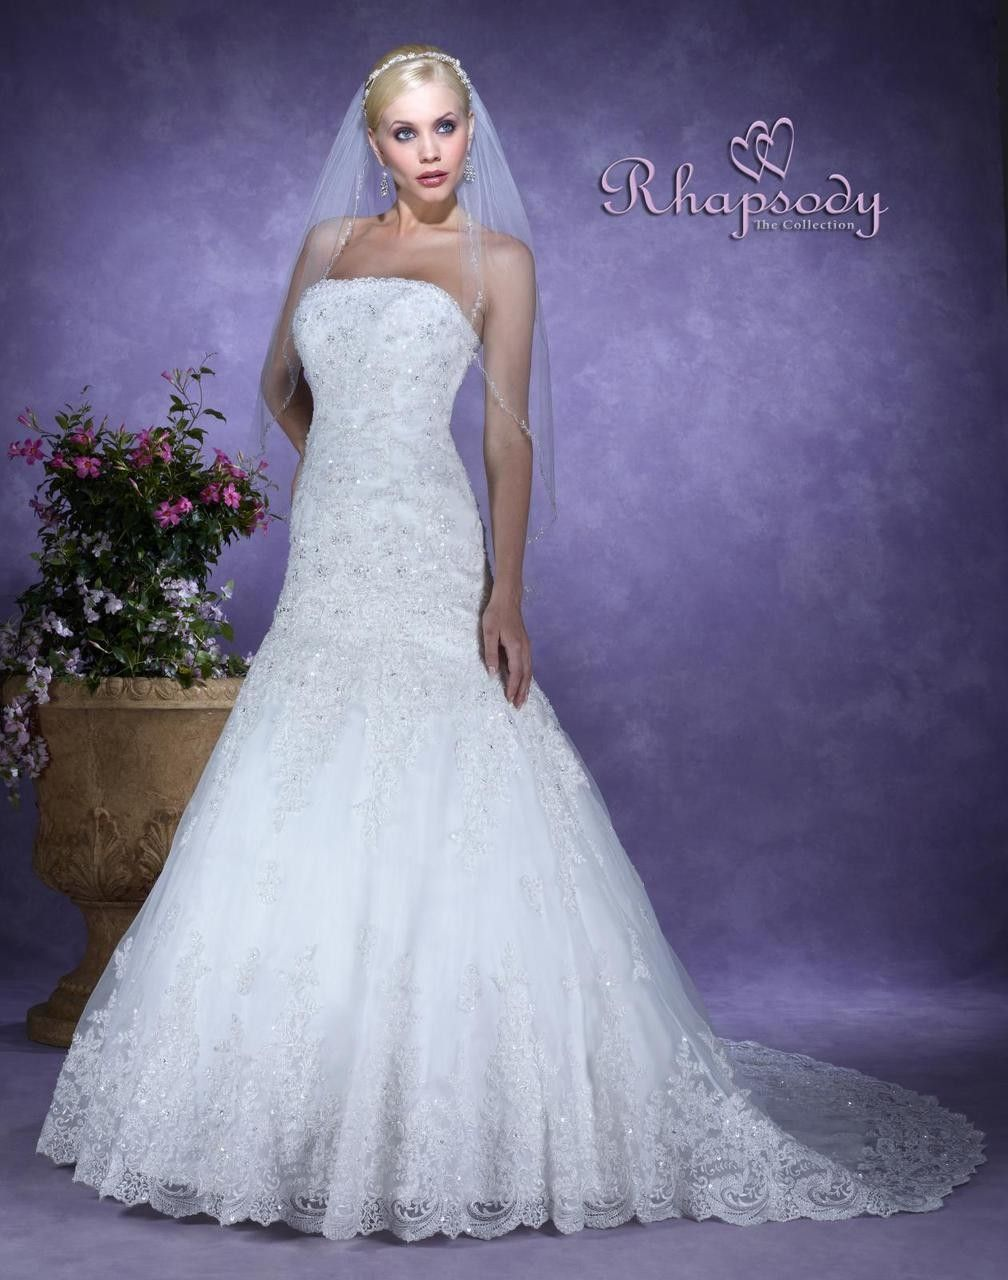 Symphony Wedding Dress - Style R7104 - Rhapsody Collection $379.99 ...